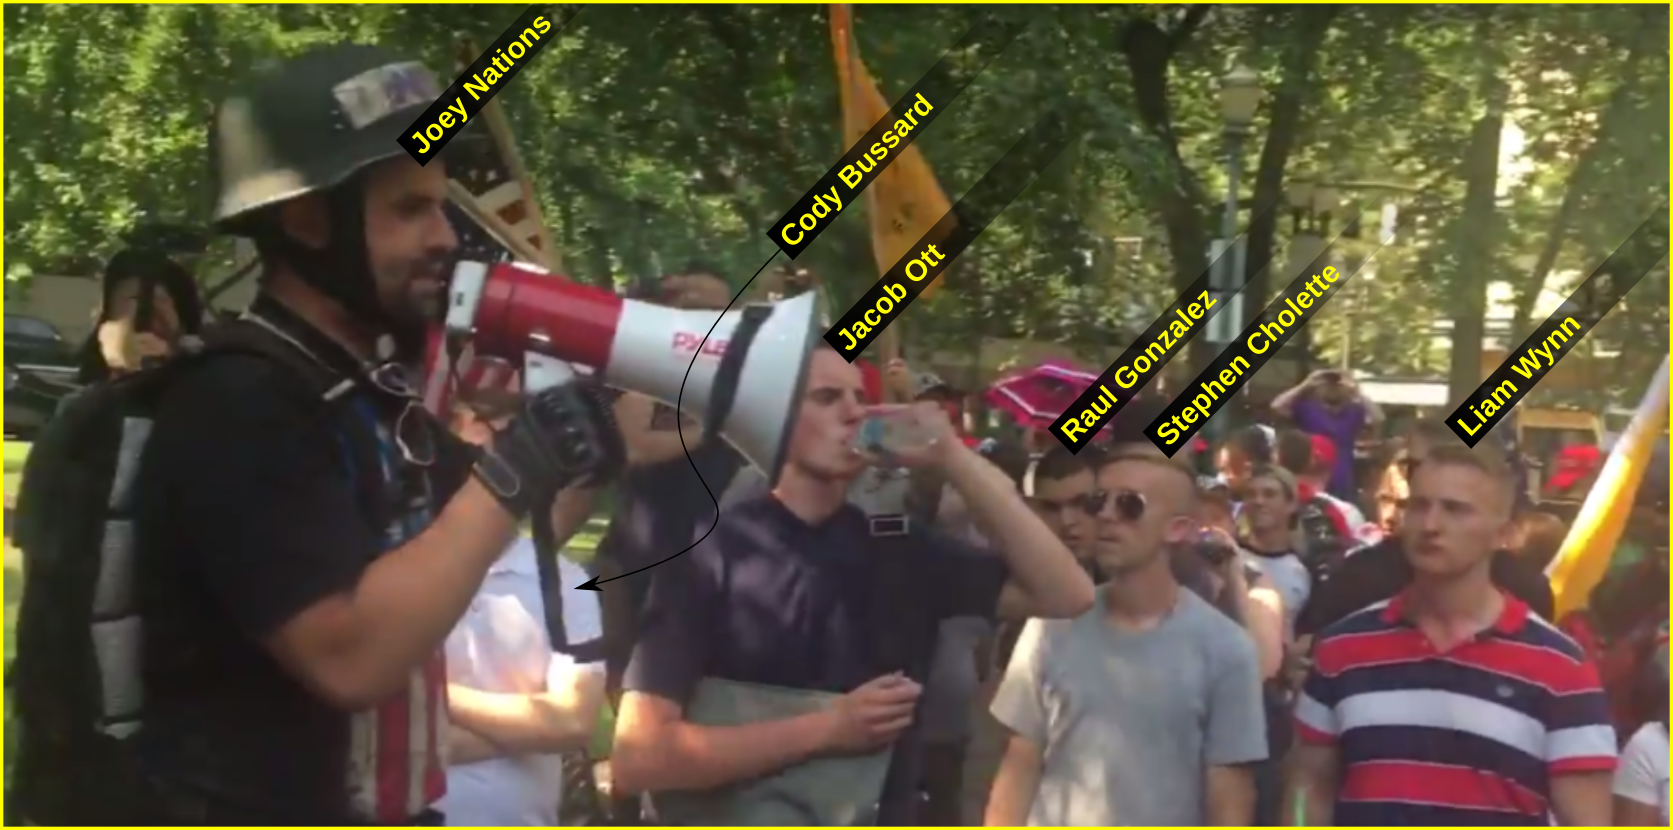 Liam Wynn at an August 6 Patriot Prayer rally